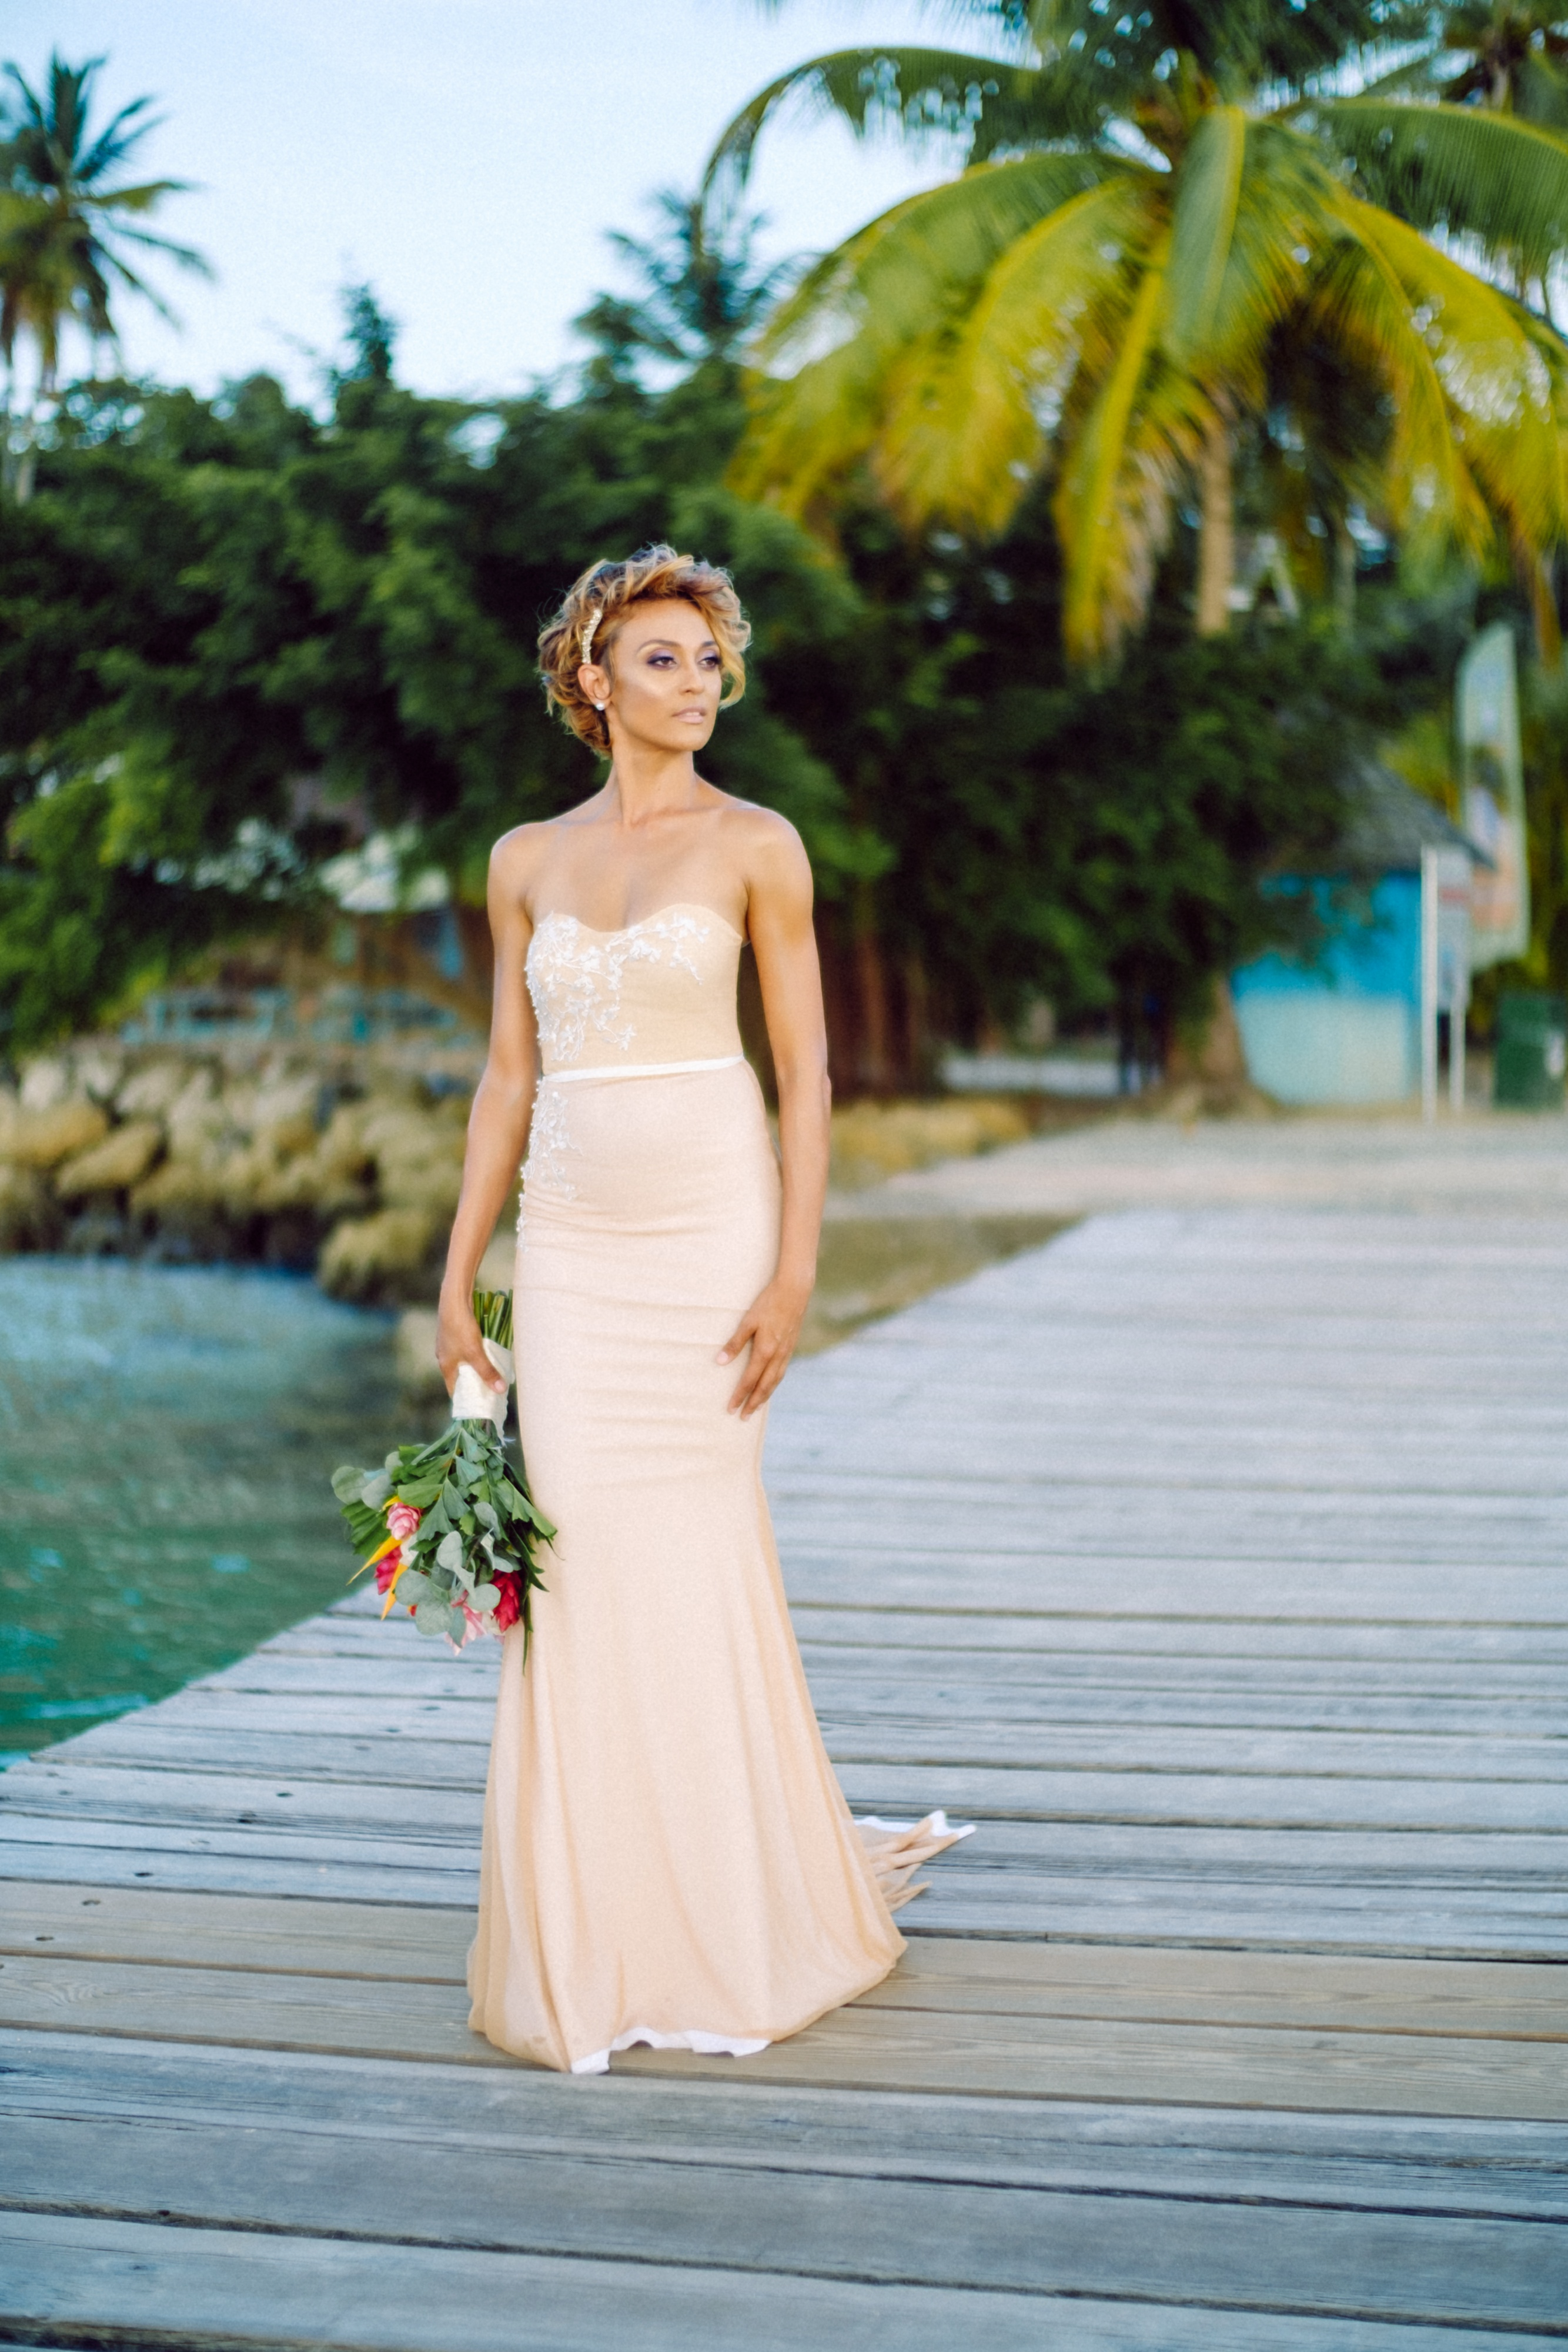 Tropical Elegance At Pigeon Point Heritage Park In Tobago, Photography by NCH Films, Decor by Daisy's Weddings for Destination Weddings Magazine ADRIANA, www.adrianaweddings.com